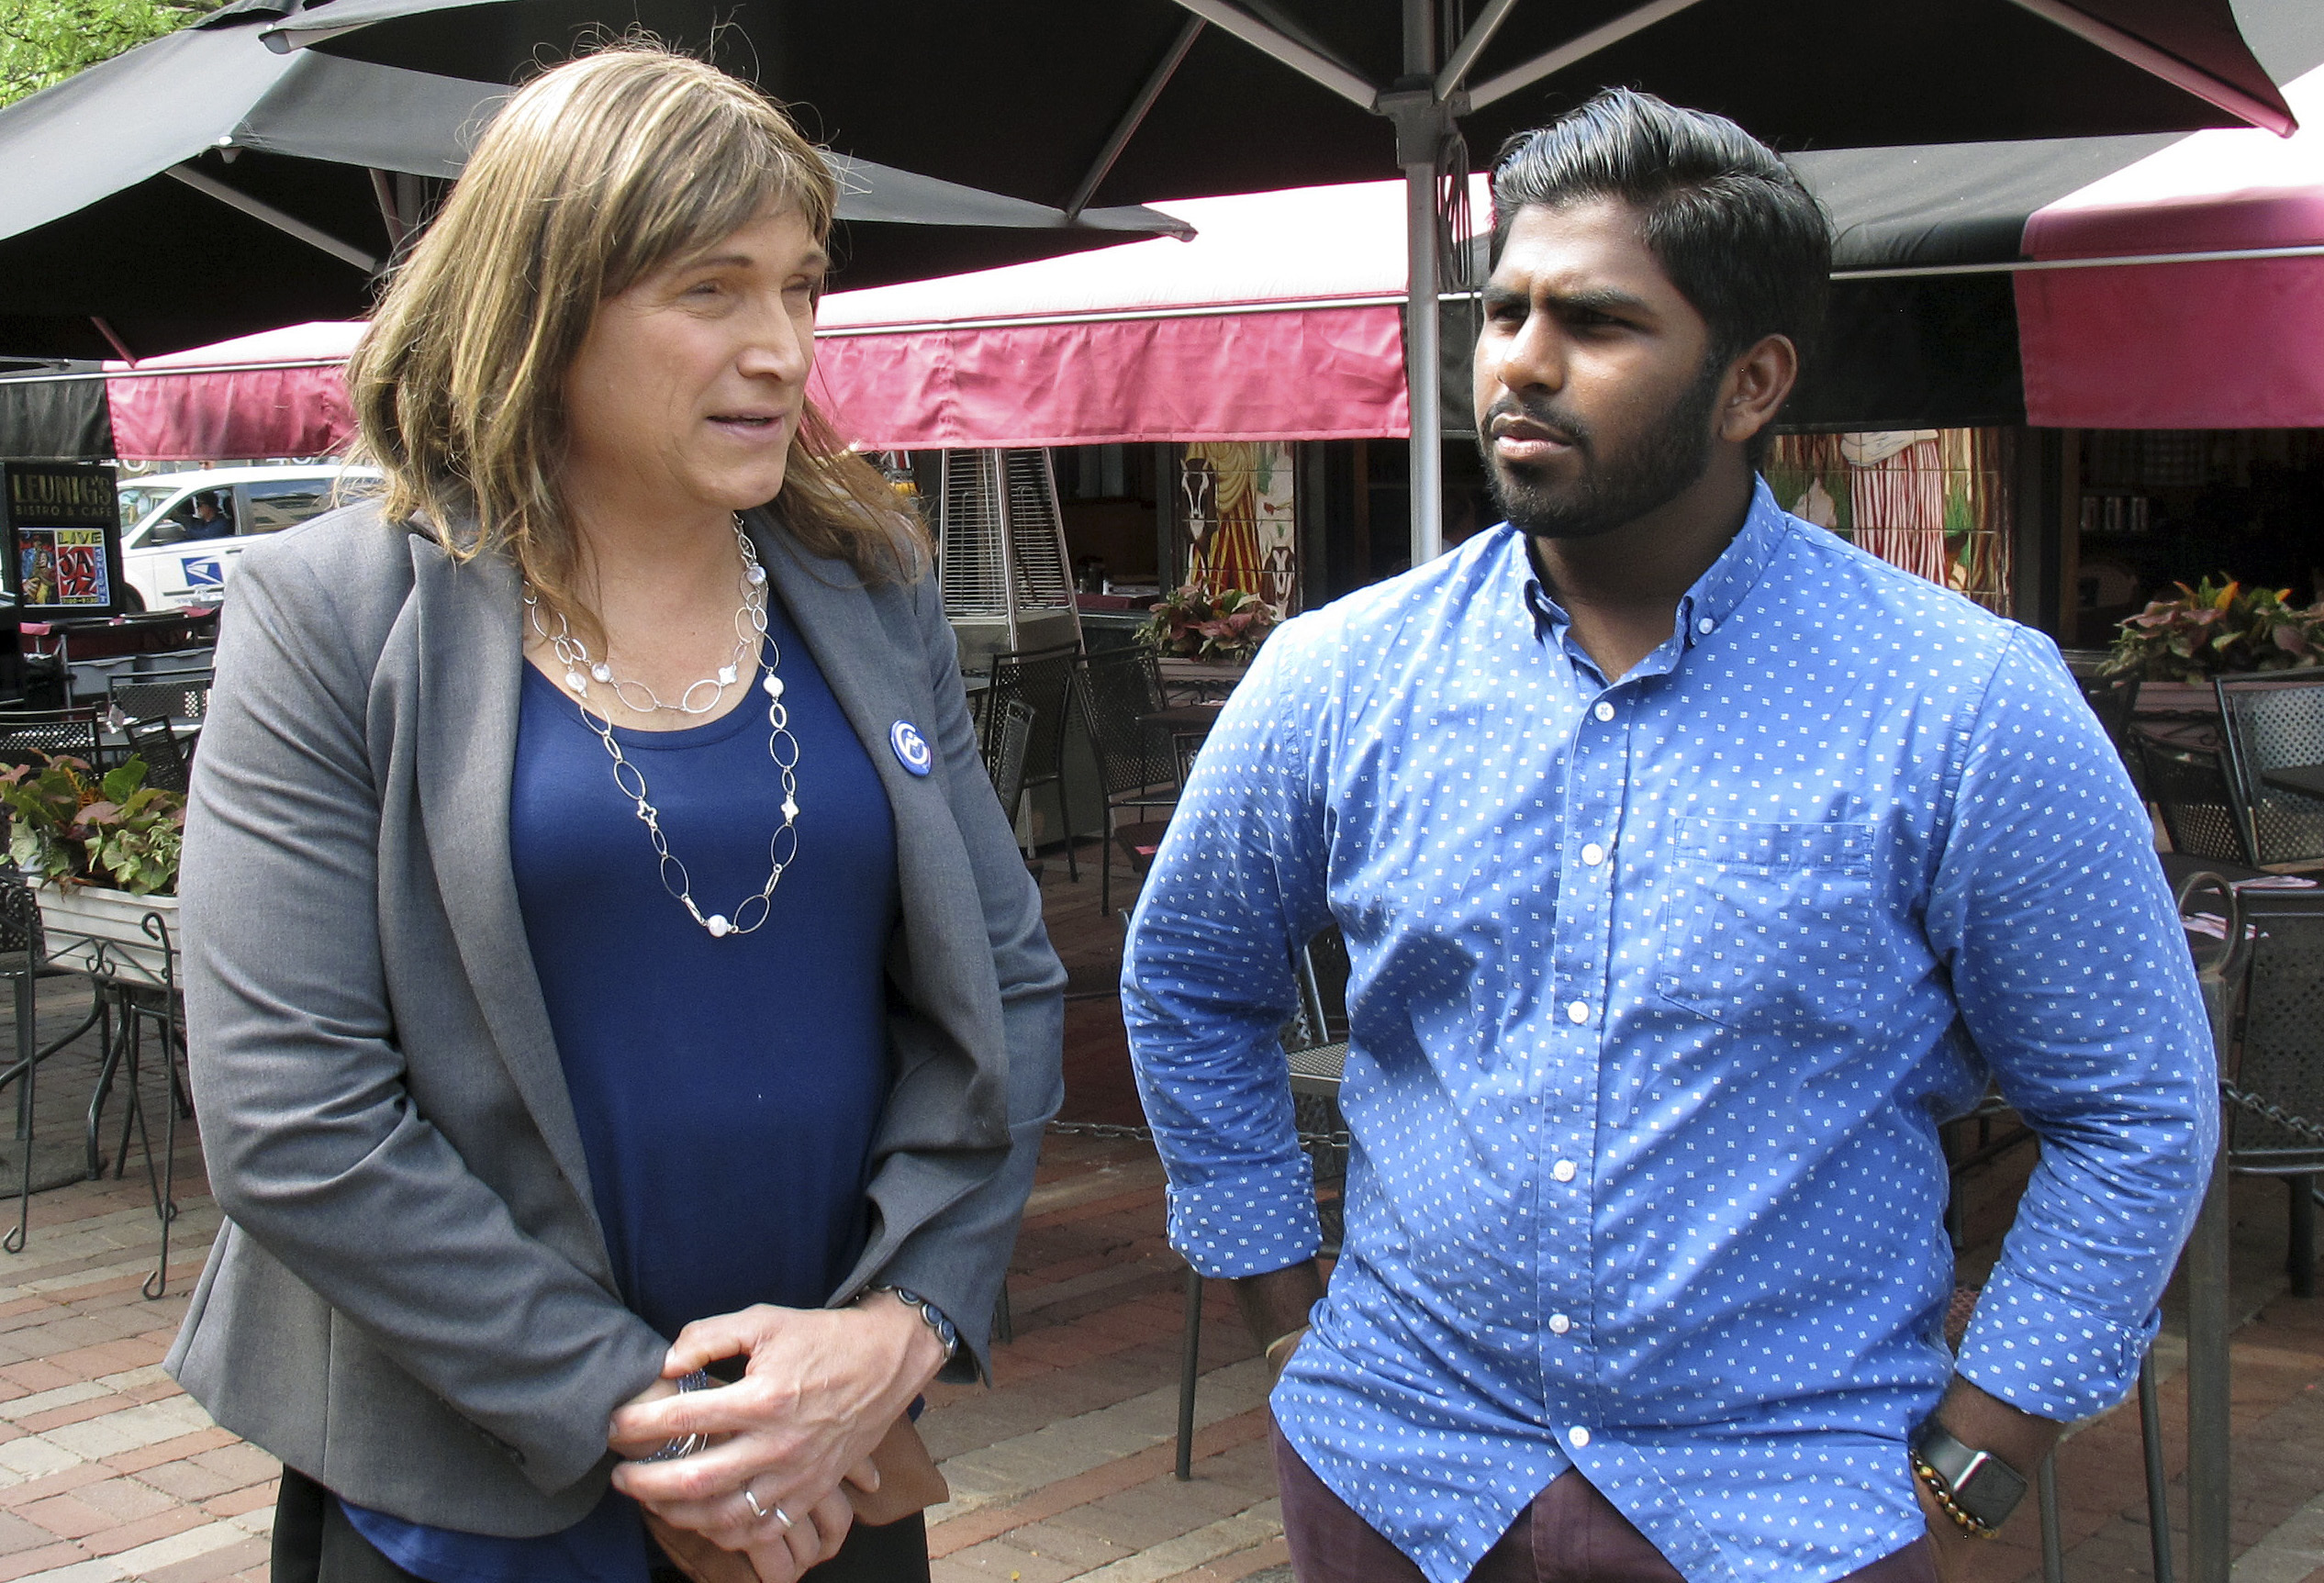 In this Aug. 9, 2018 photo, Christine Hallquist, left, transgender candidate seeking the Democratic party nomination to run for governor of Vermont, speaks with supporter Asfar Basha in Burlington, Vermont.